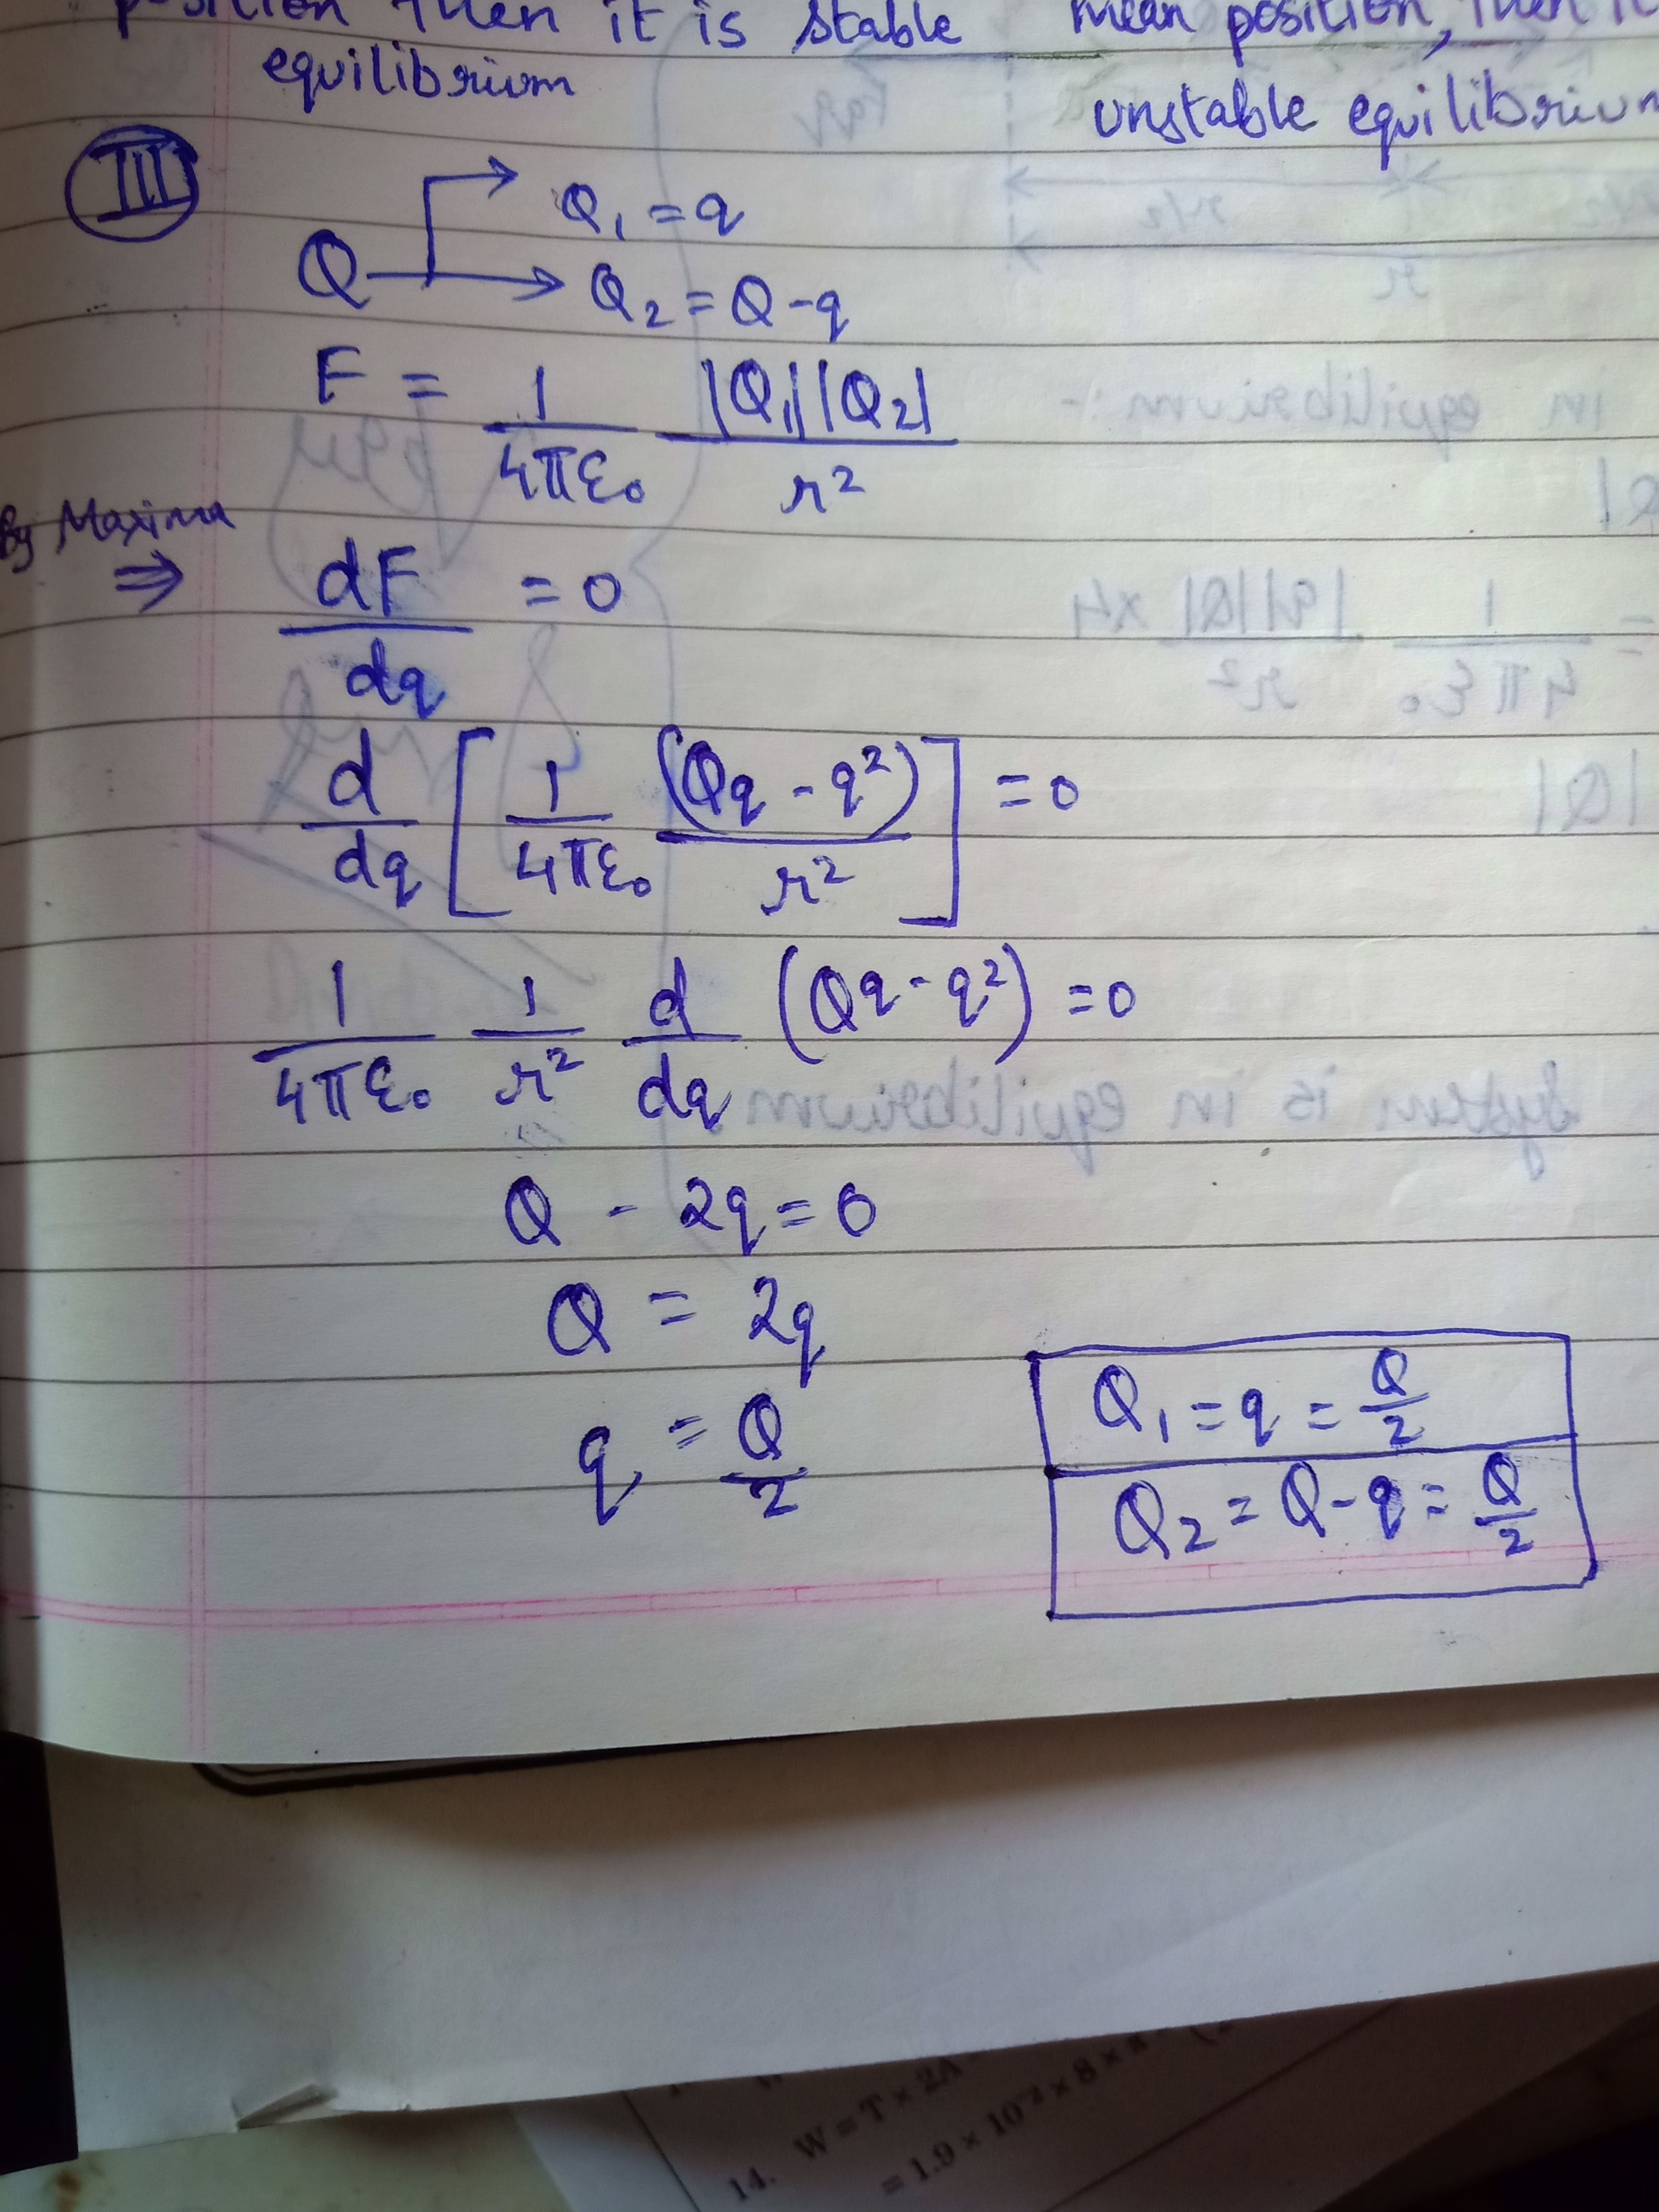 A Charge Q Is Divided Into Two Parts Q And Q Q What Is The Value Of Q For Maximum Force Between Them Brainly In